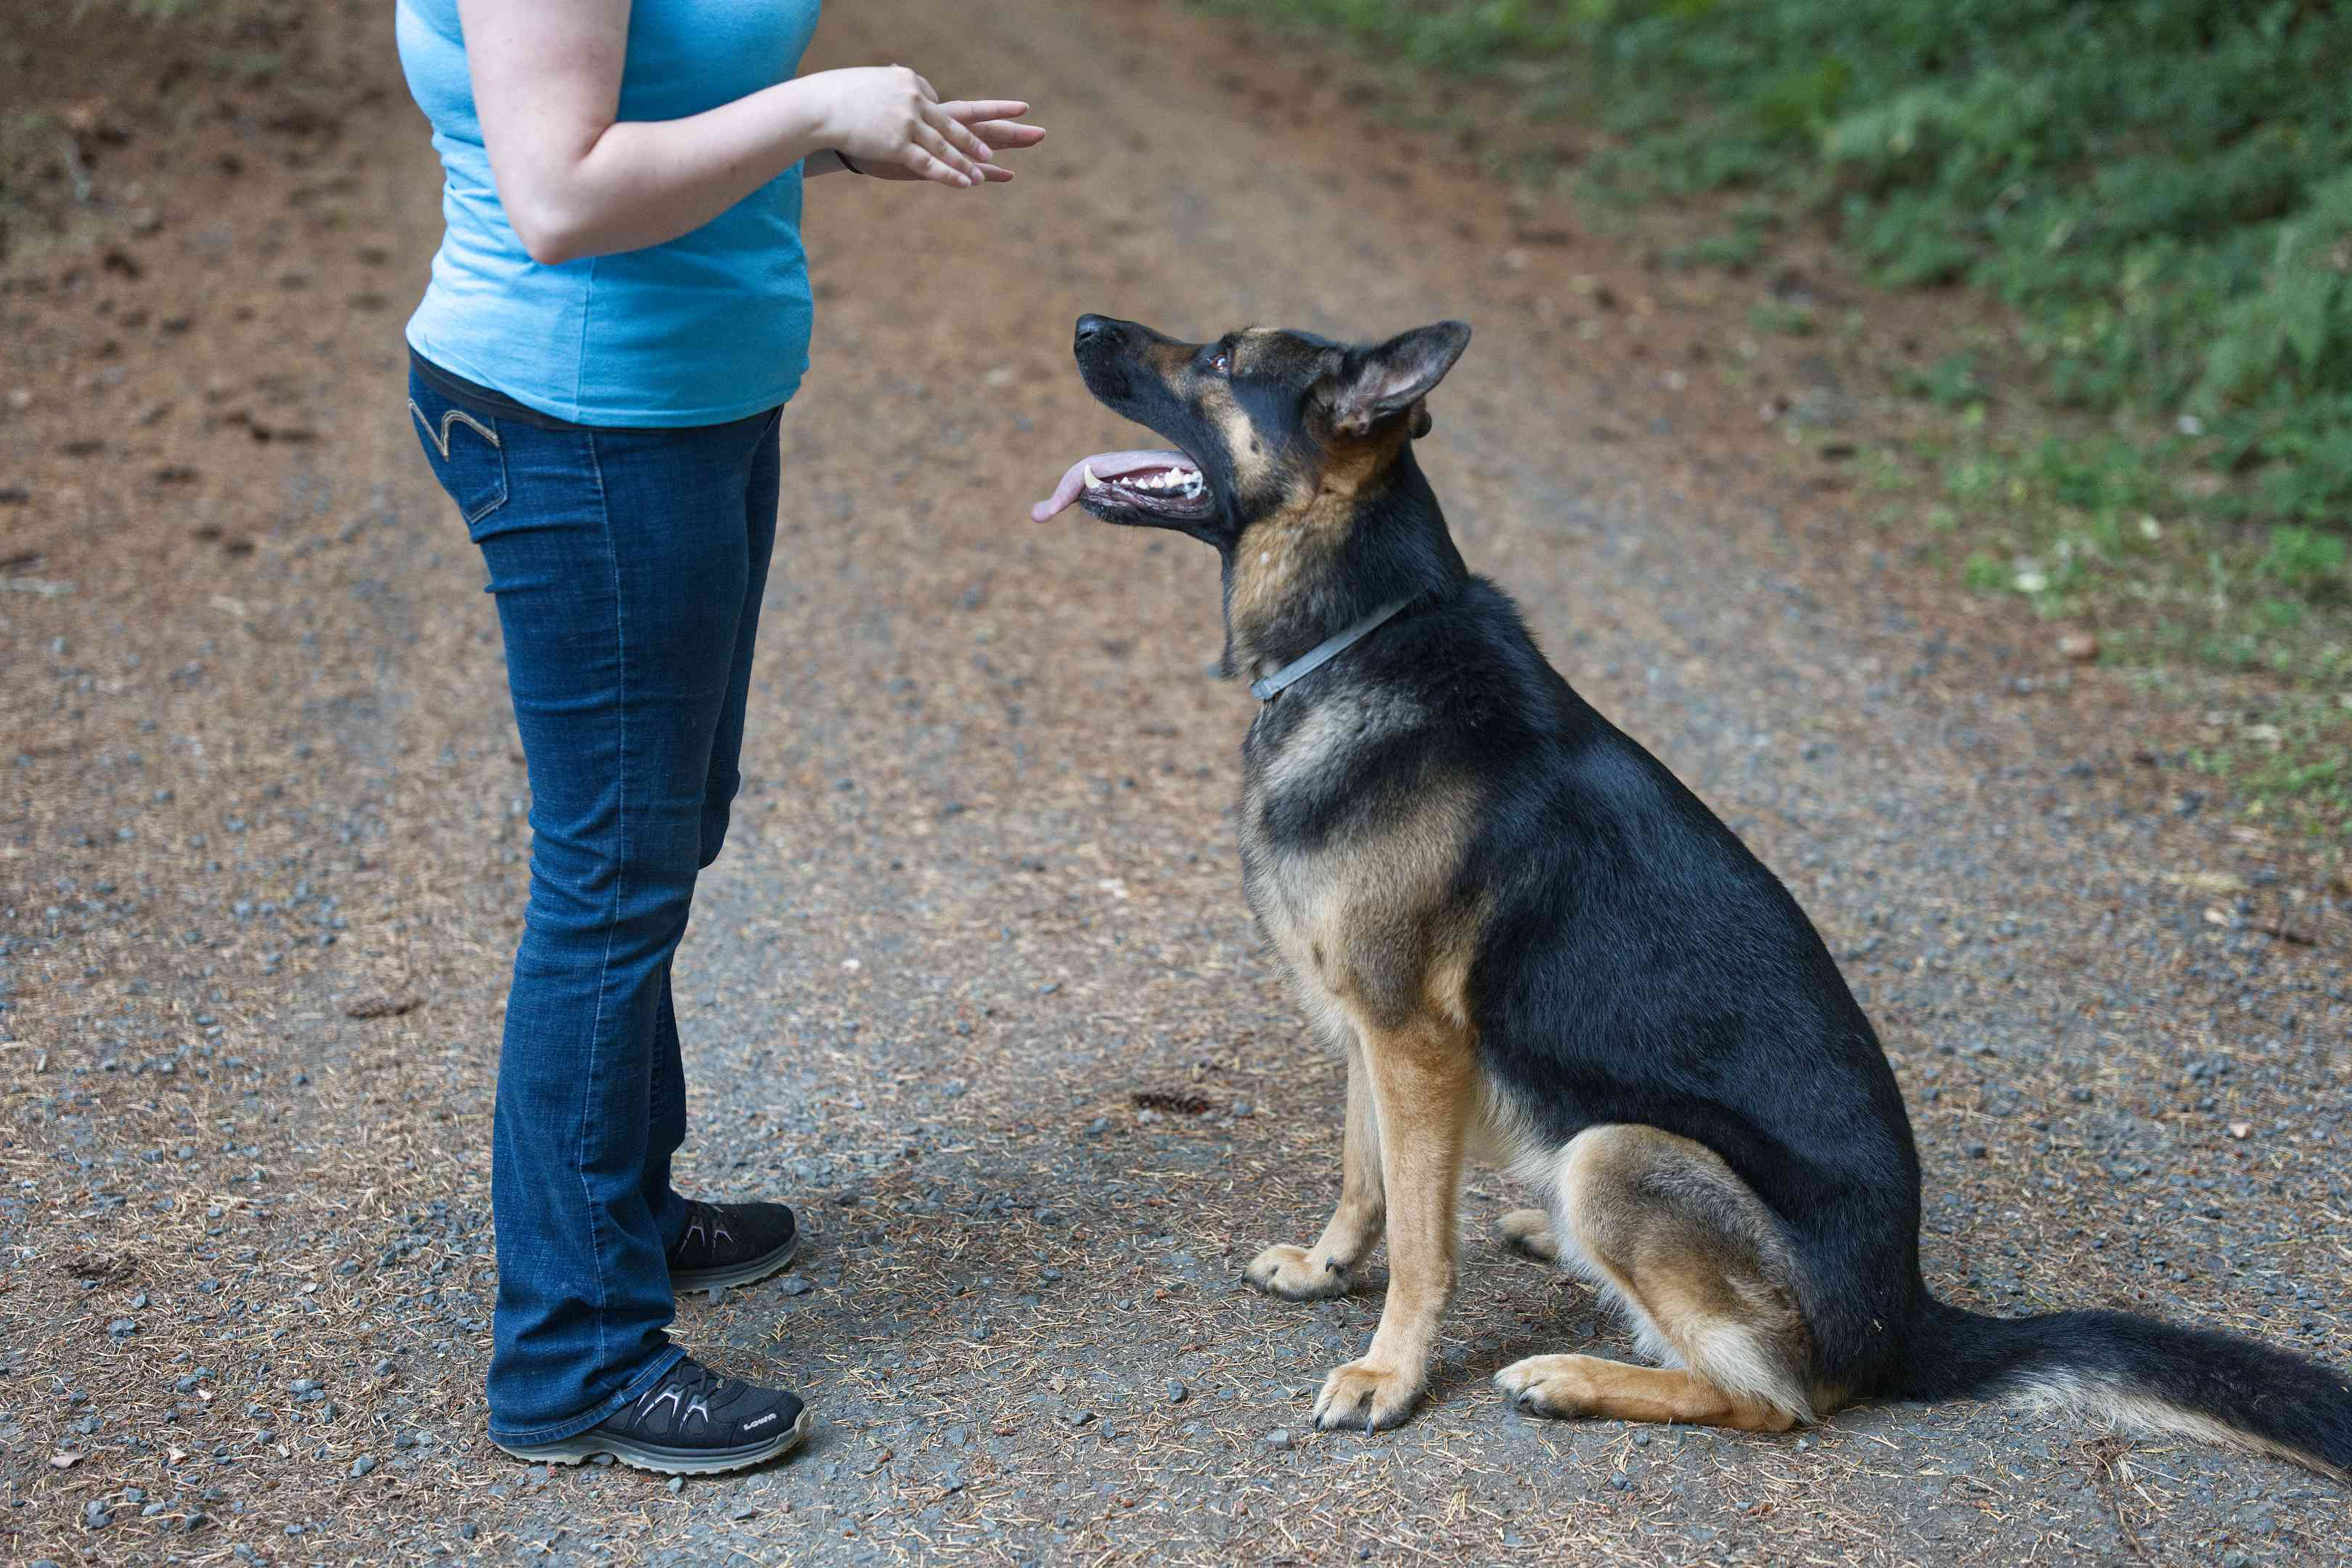 woman trains German Shepherd dog with hand movements while outside on dirt road